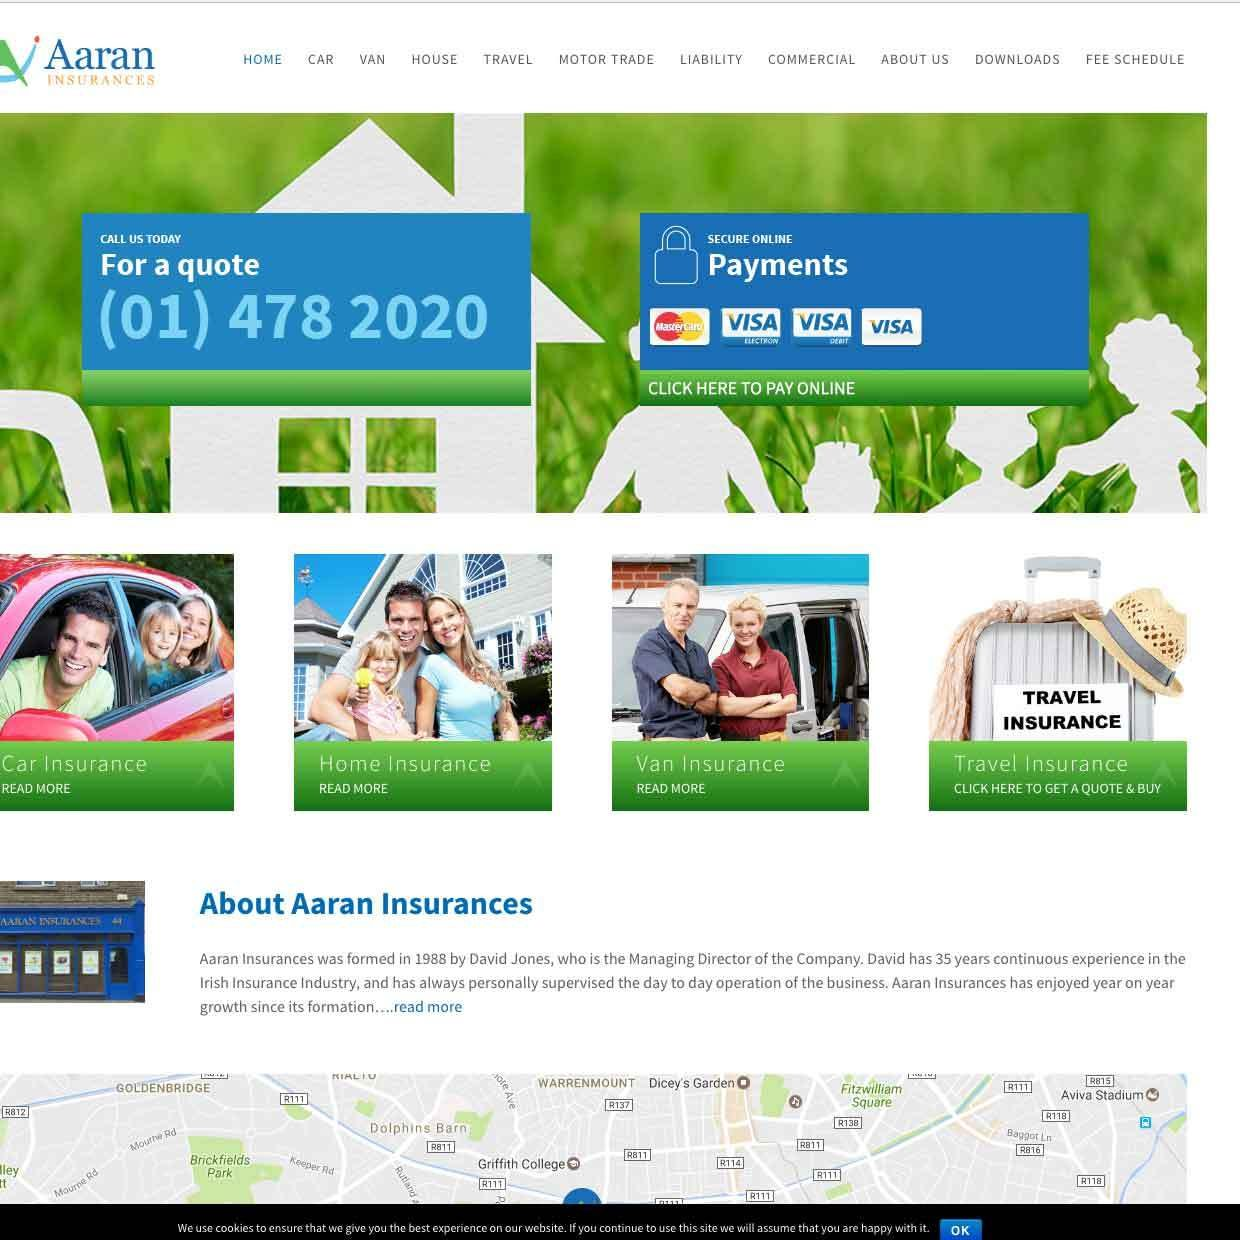 Aran Insurances website design